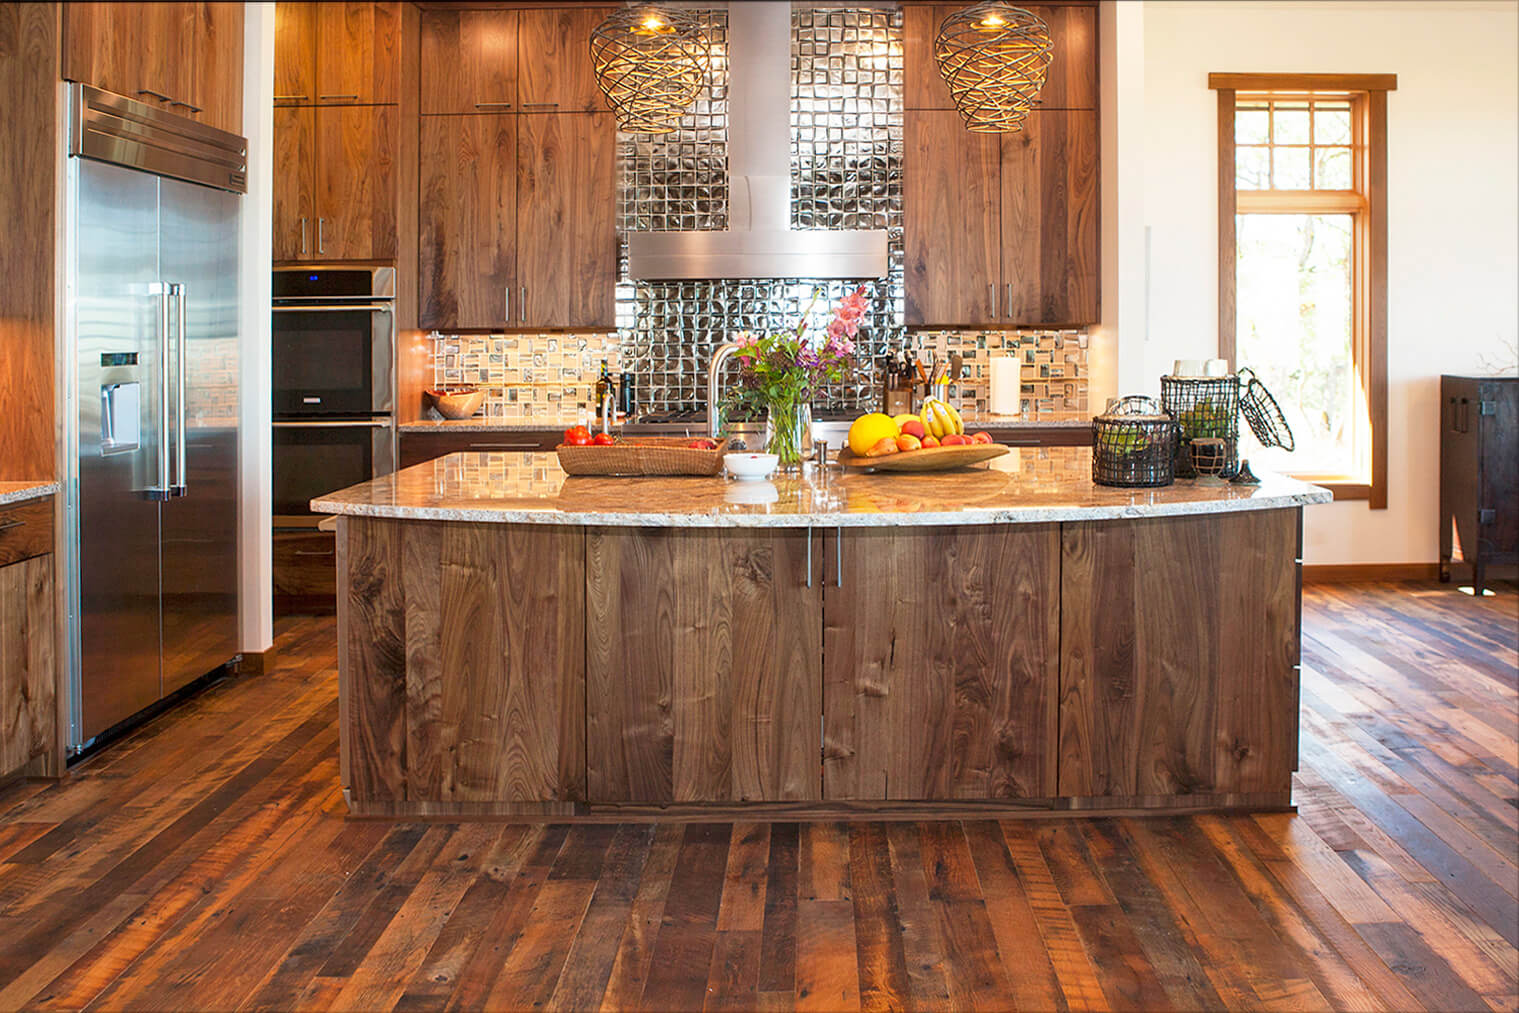 Rustic cabin style wood kitchen.